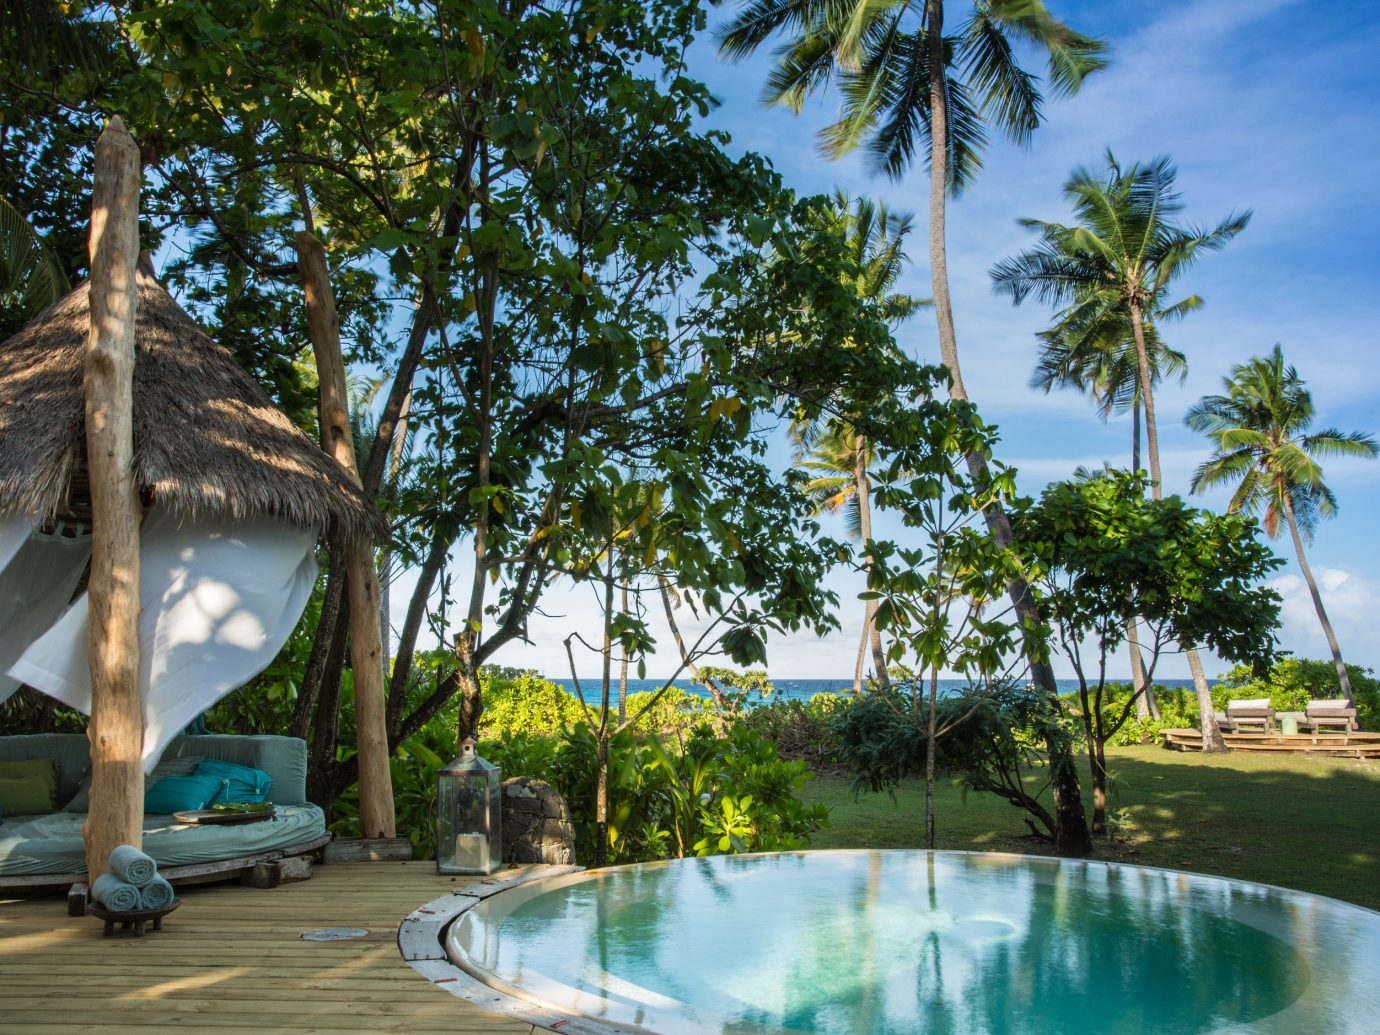 All-Inclusive Resorts Hotels Romantic Hotels tree outdoor Resort property arecales palm tree swimming pool leisure tropics vacation palm real estate plant estate water Villa sky tourism resort town caribbean hotel cottage